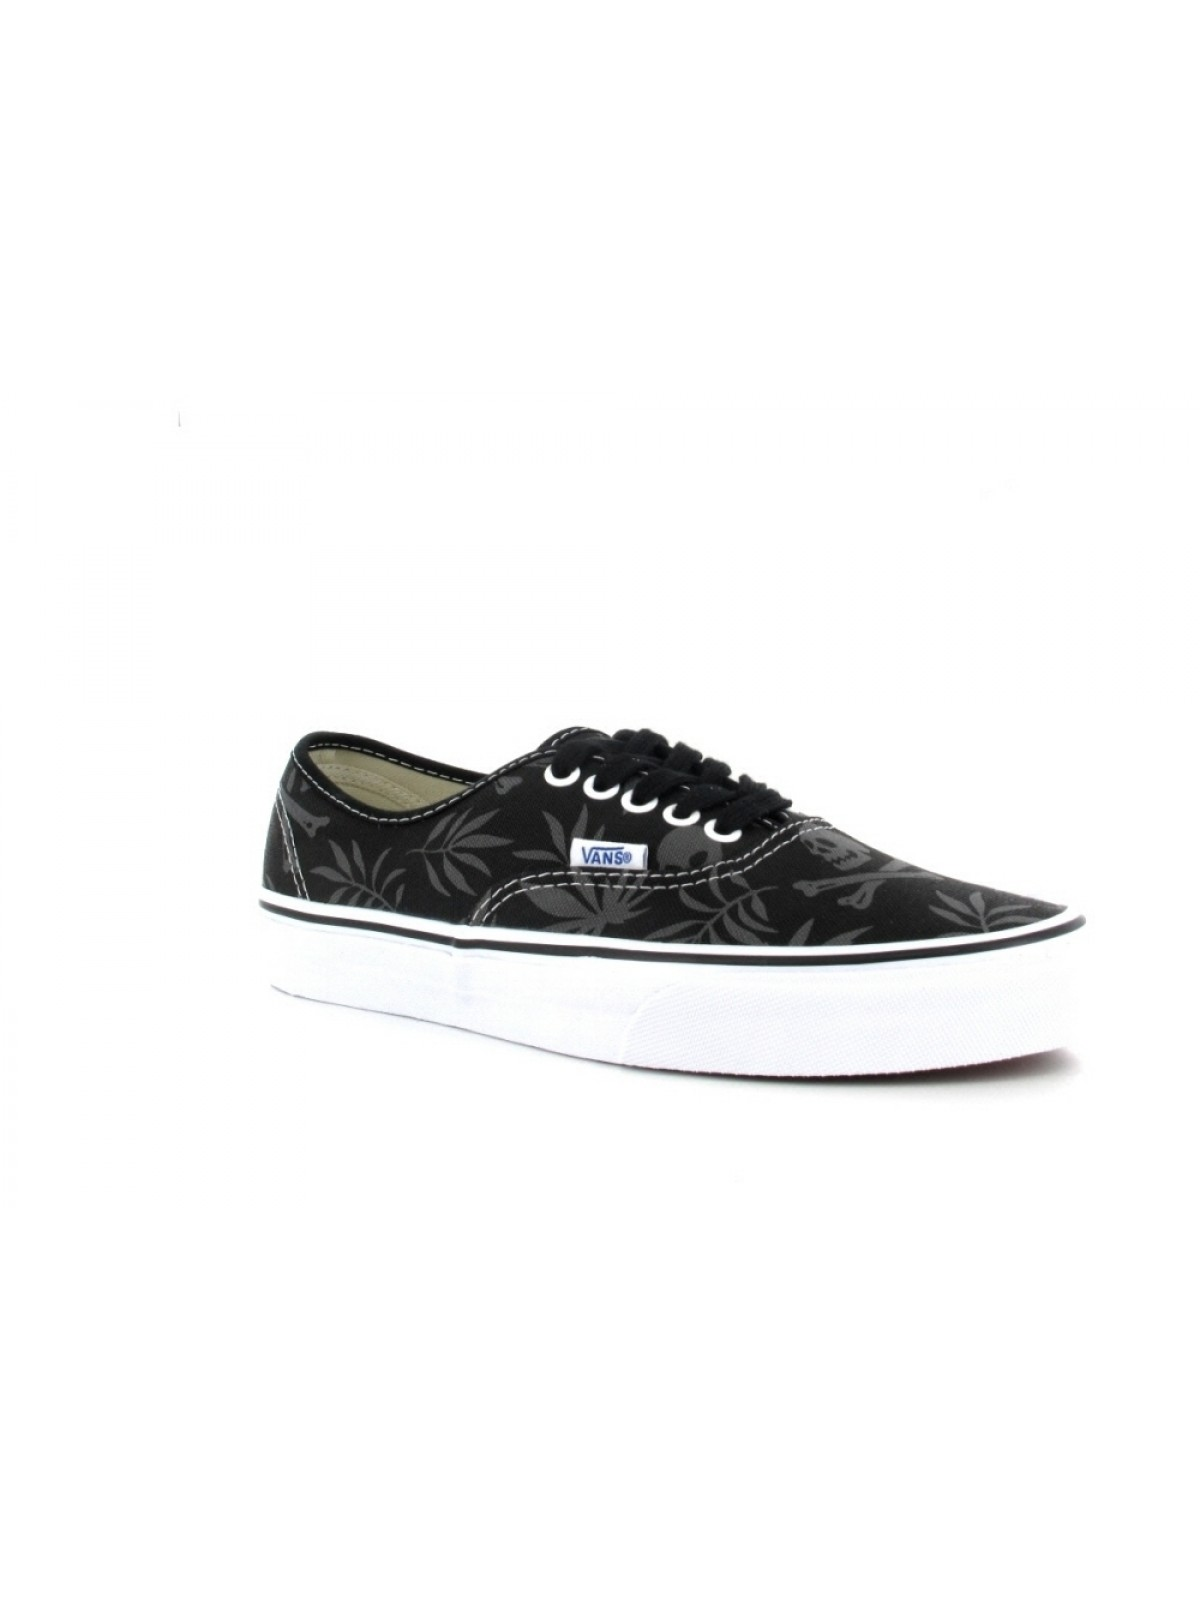 Vans Authentic toile Van Doren skull noir